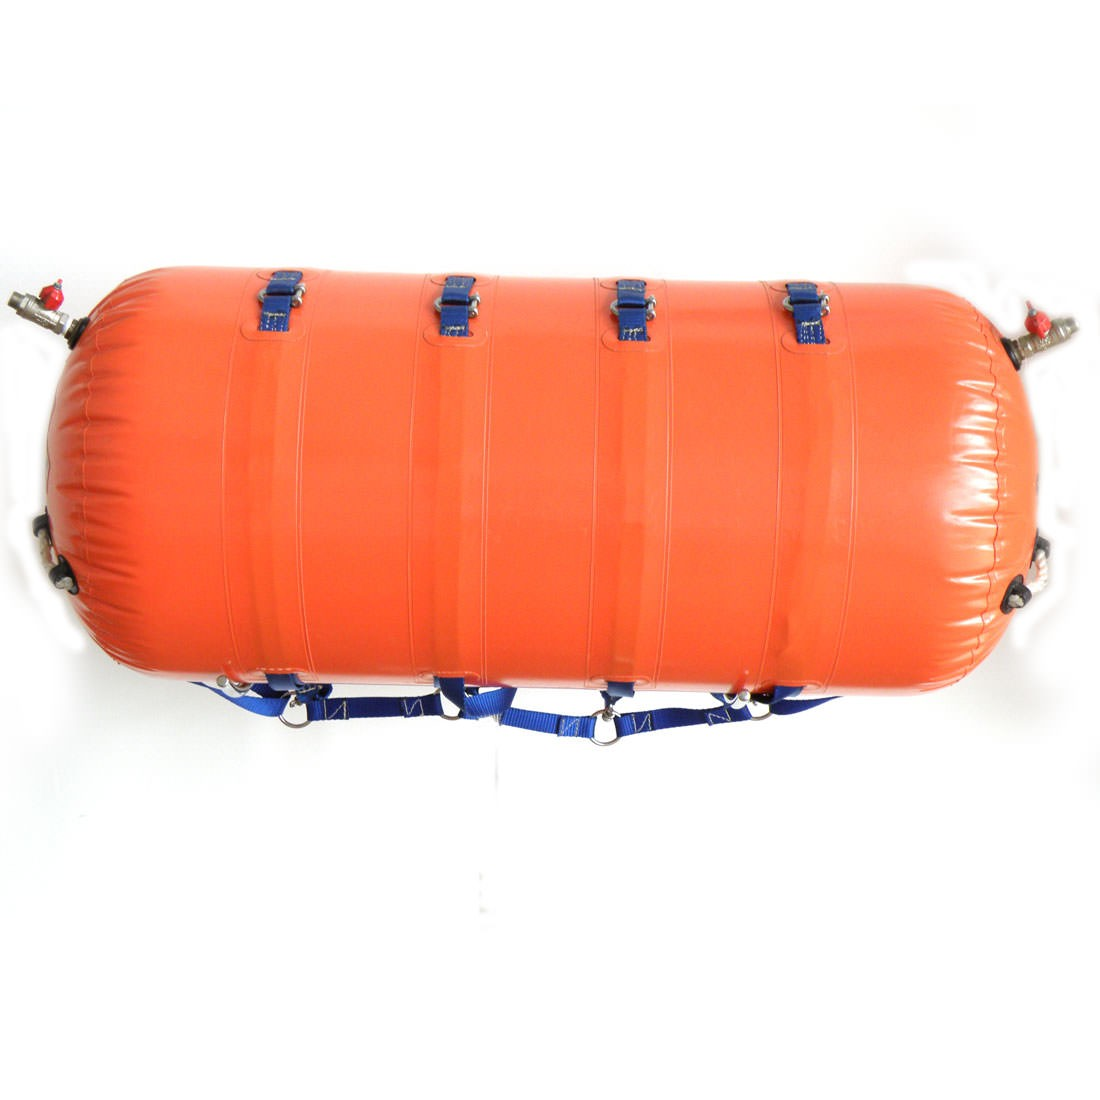 Seaflex 35 Ton Inflatable Buoyancy Unit